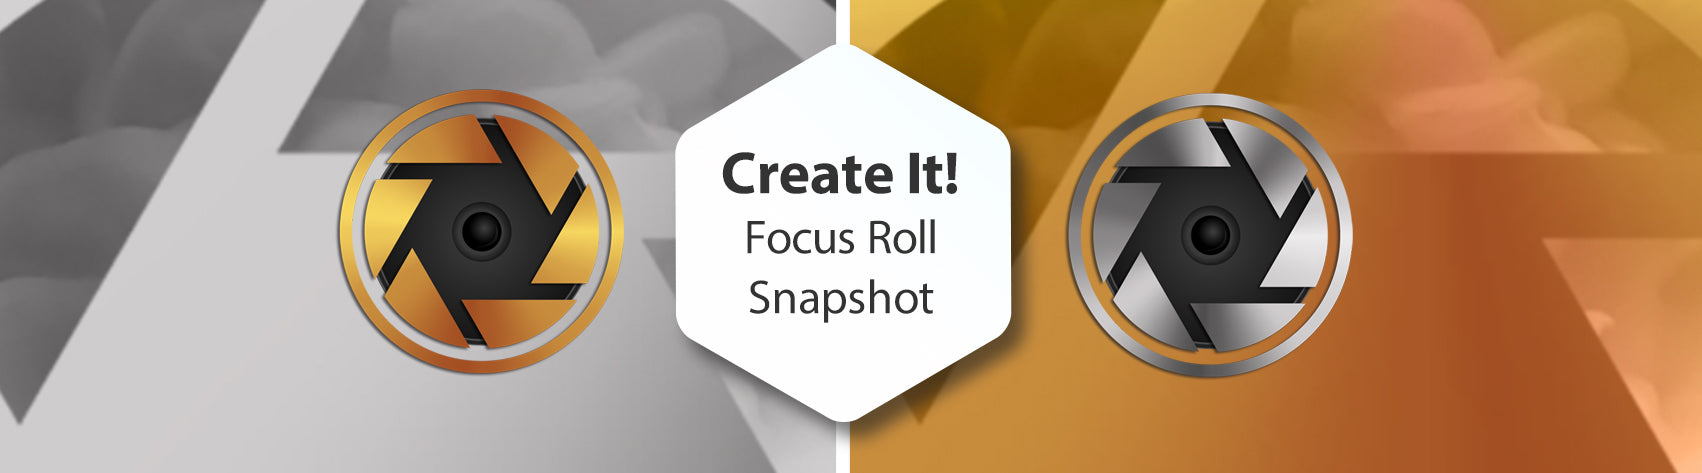 Create It! Focus Roll Snapshot